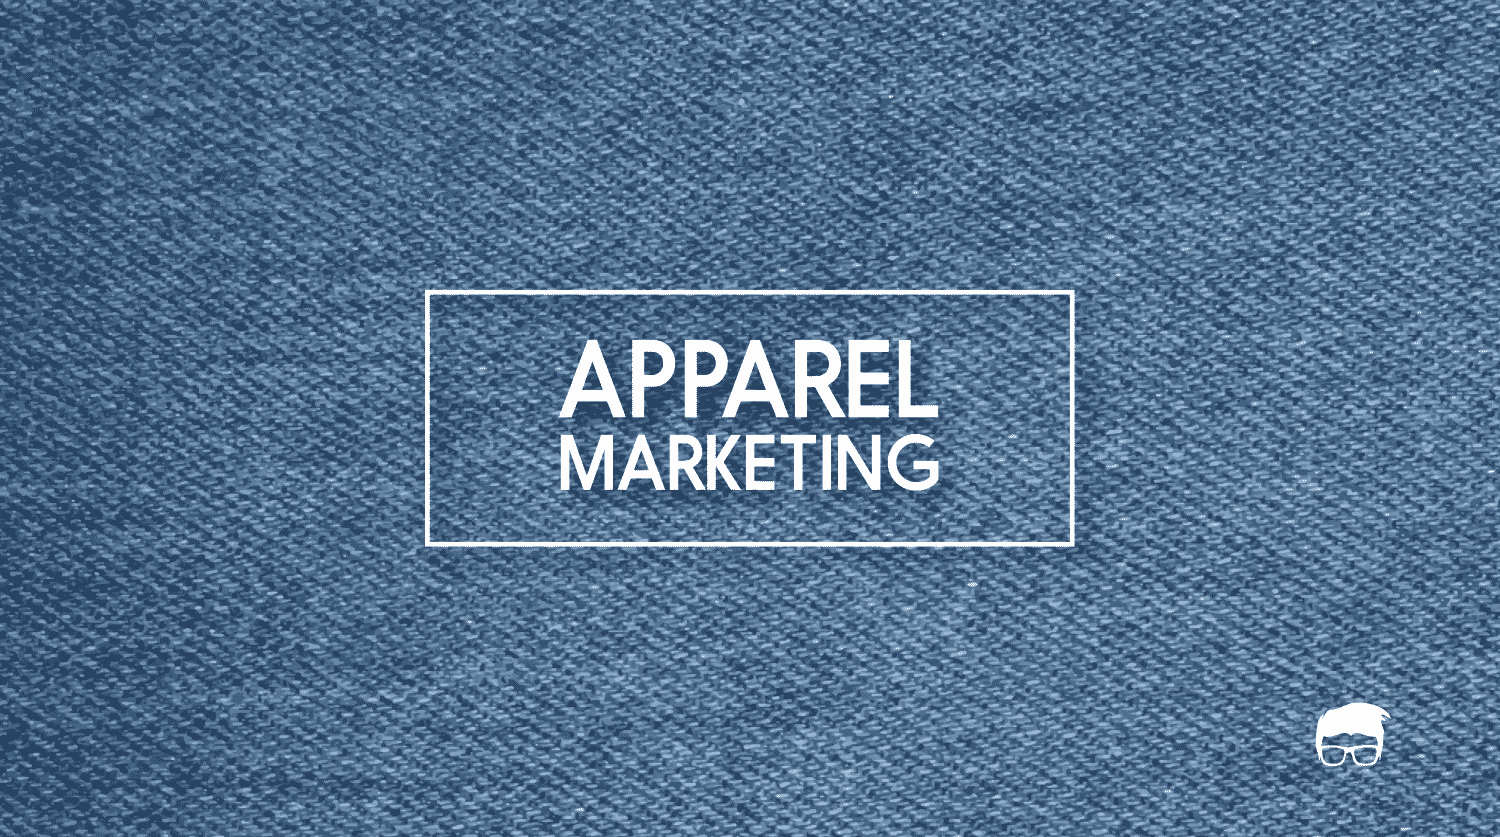 APPAREL MARKETING